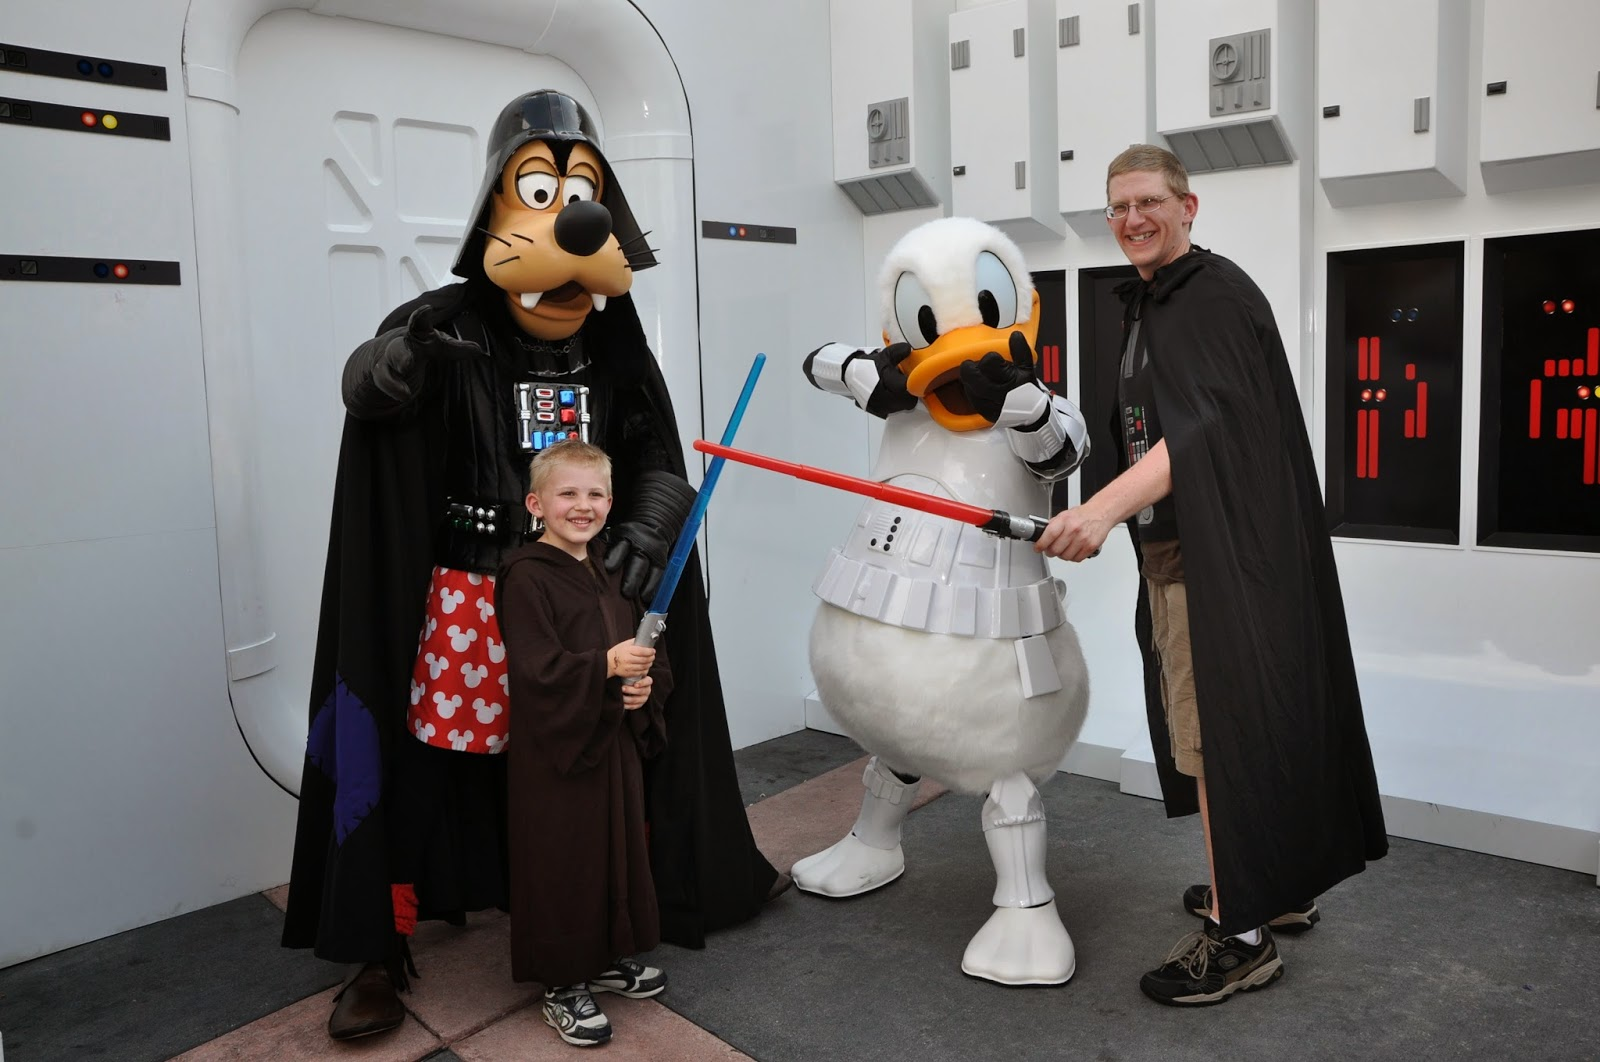 You can meet Darth Goofy and Storm Trooper Donald at Disney Hollywood Studios Star Wars Days